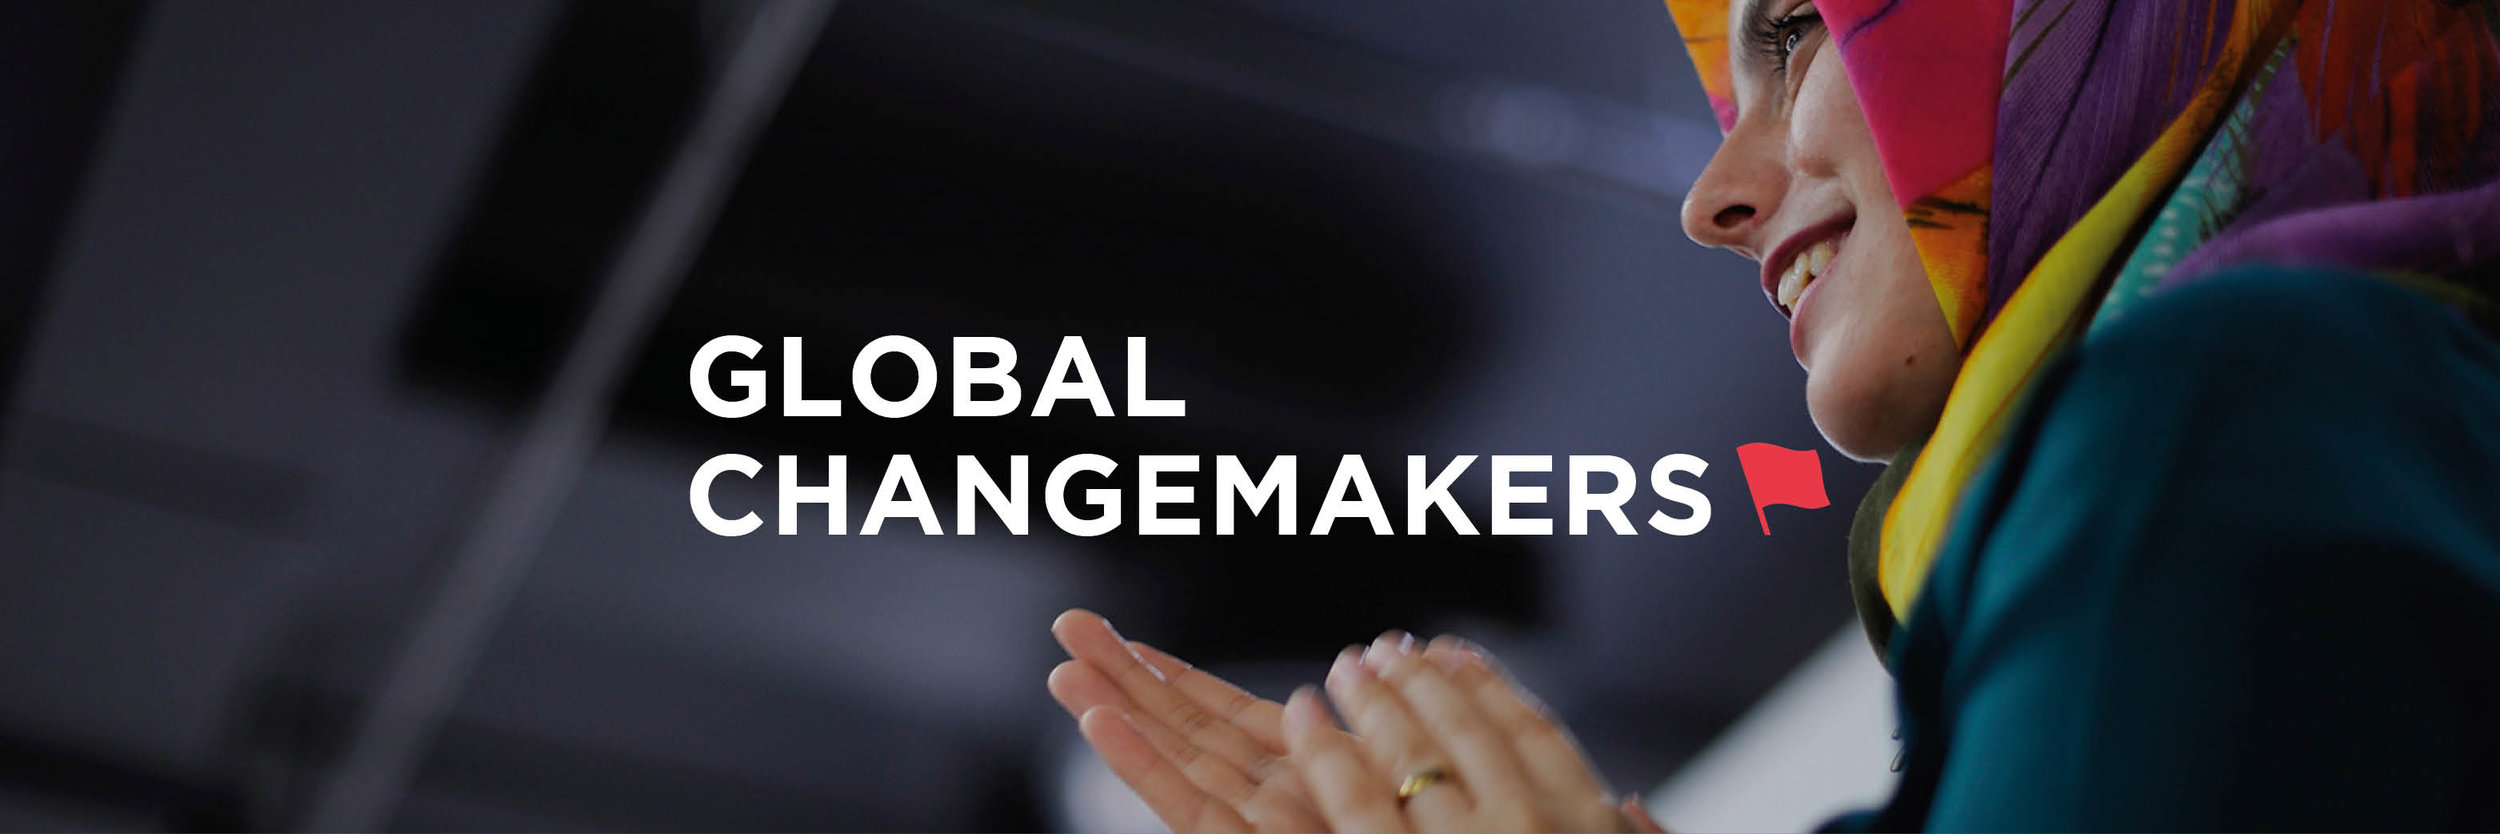 Movement - Graphics - MED - Global ChangeMakers.jpg